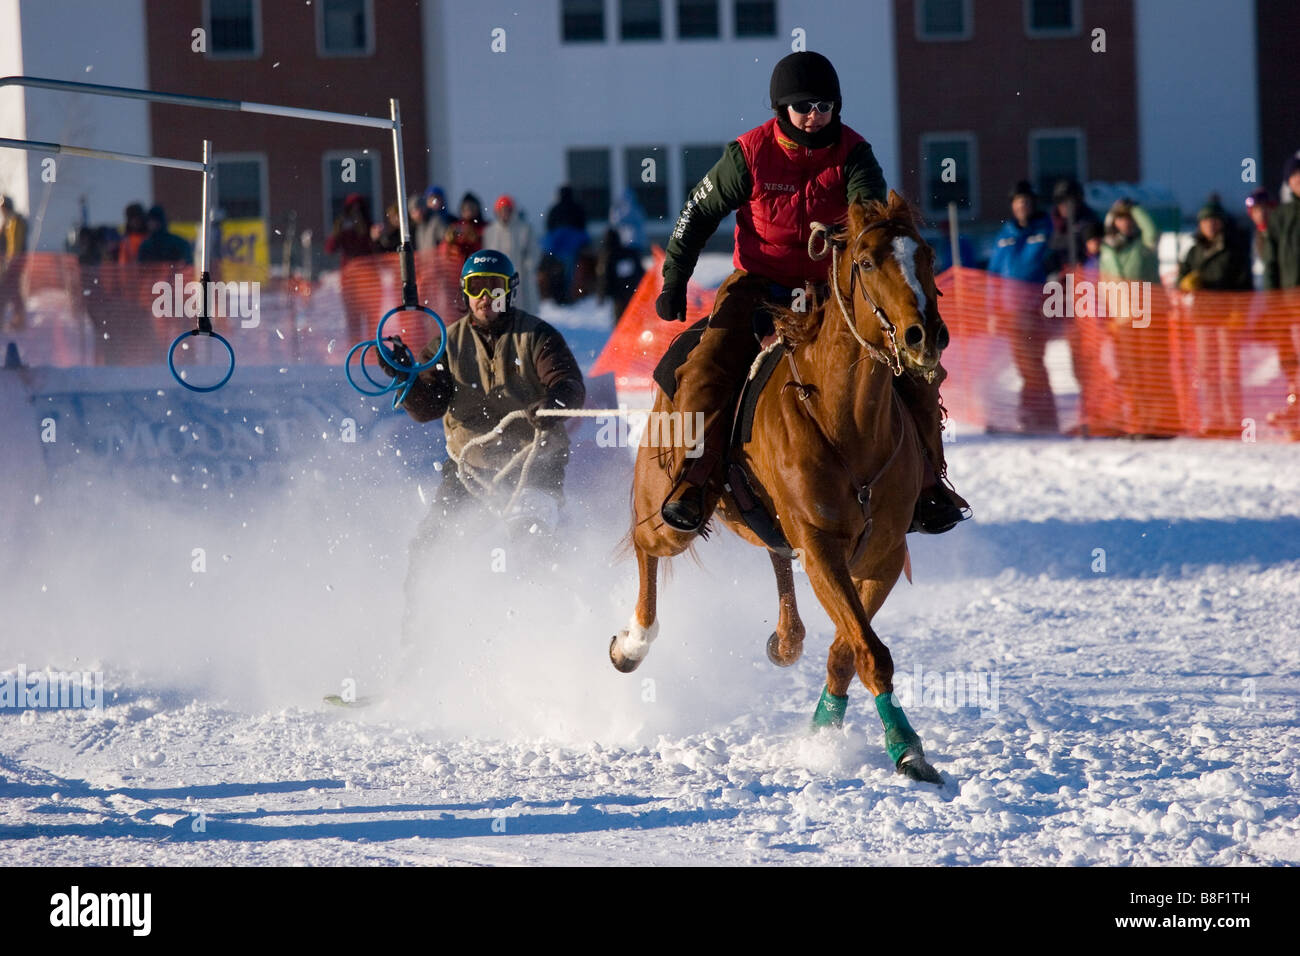 A rider on horseback pulls a skier in a winter event known as skijoring, New Hampshire, USA - Stock Image